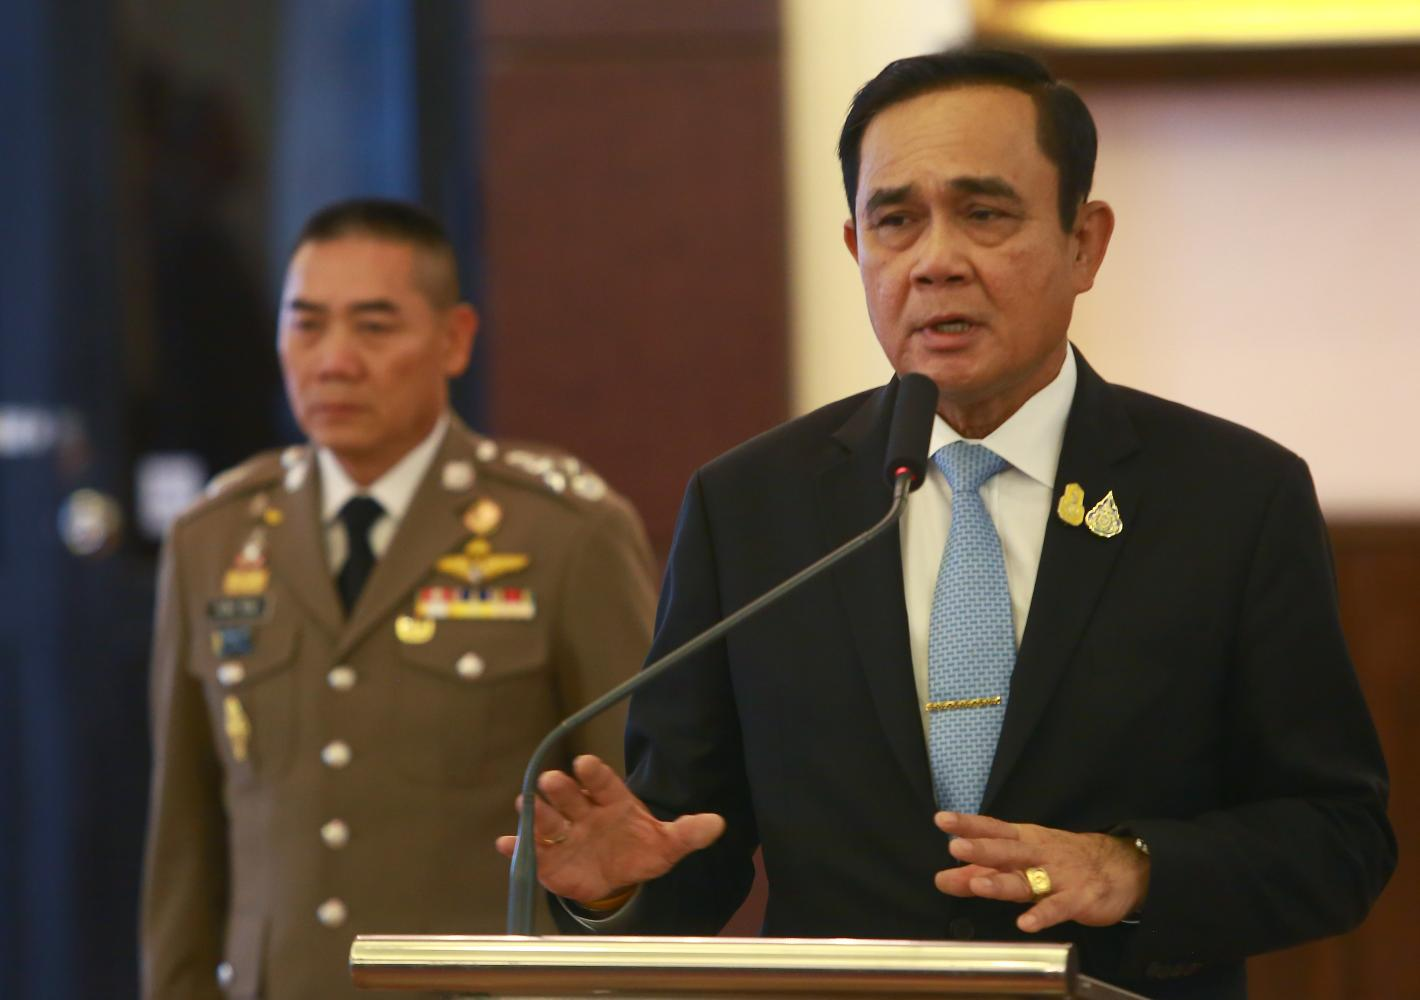 Prime Minister and Defence Minister Prayut Chan-o-cha speaks at the Royal Thai Police headquarters on Friday. He has announced he would oversee the force to drive police reform.SOMCHAI POOMLARD